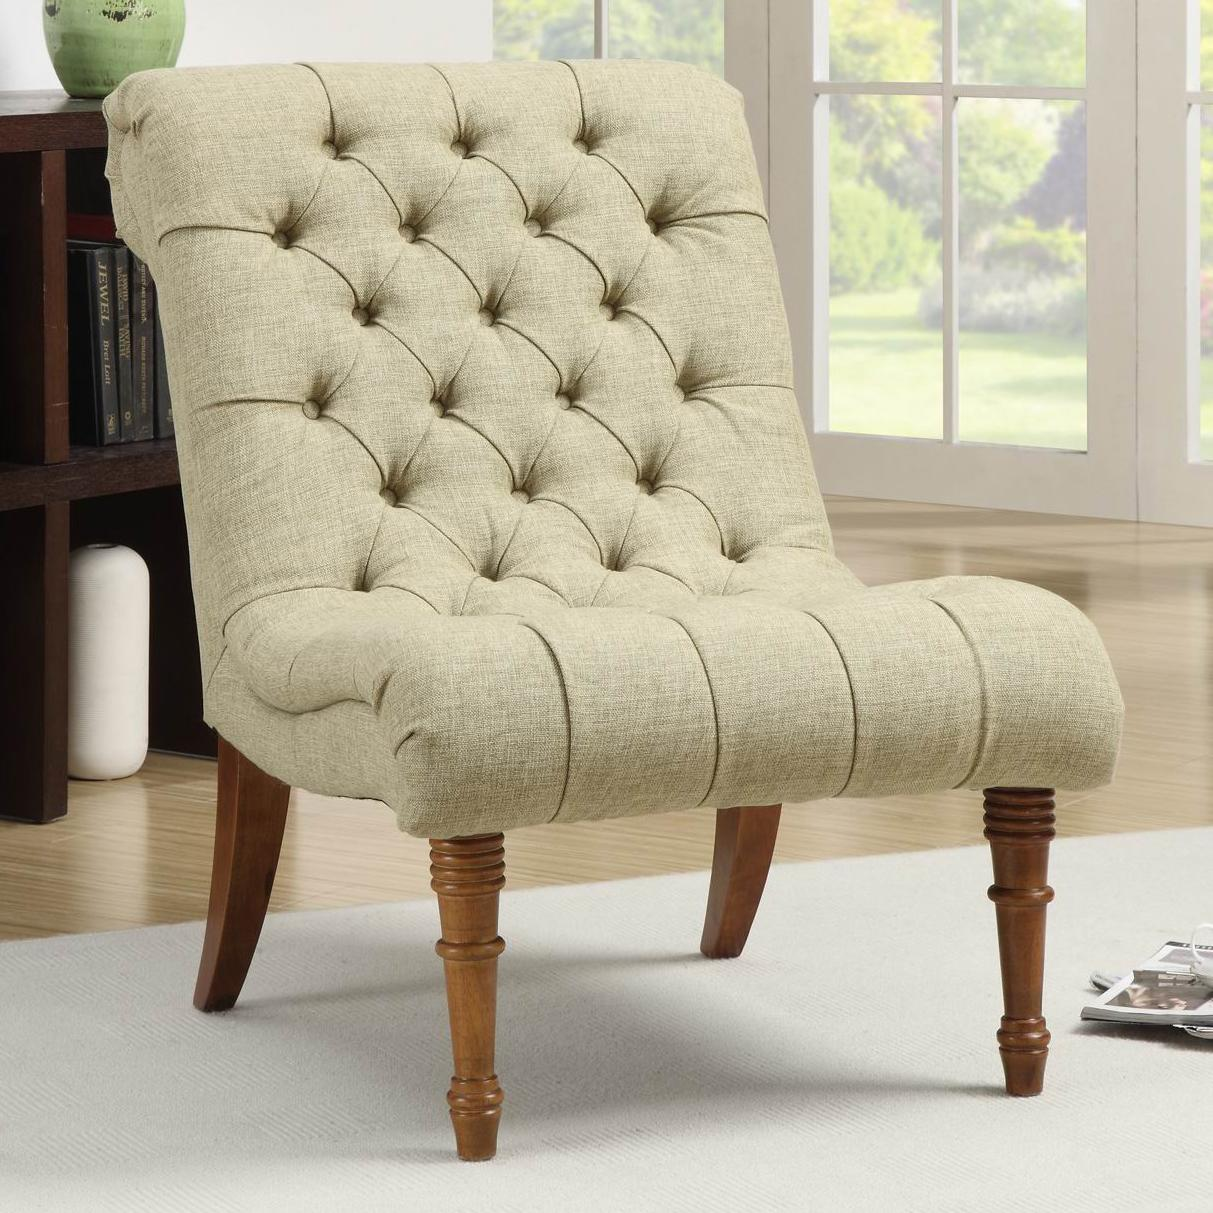 accent chairs with arms clearance fabric rocking living room furniture seating tufted chair without quality